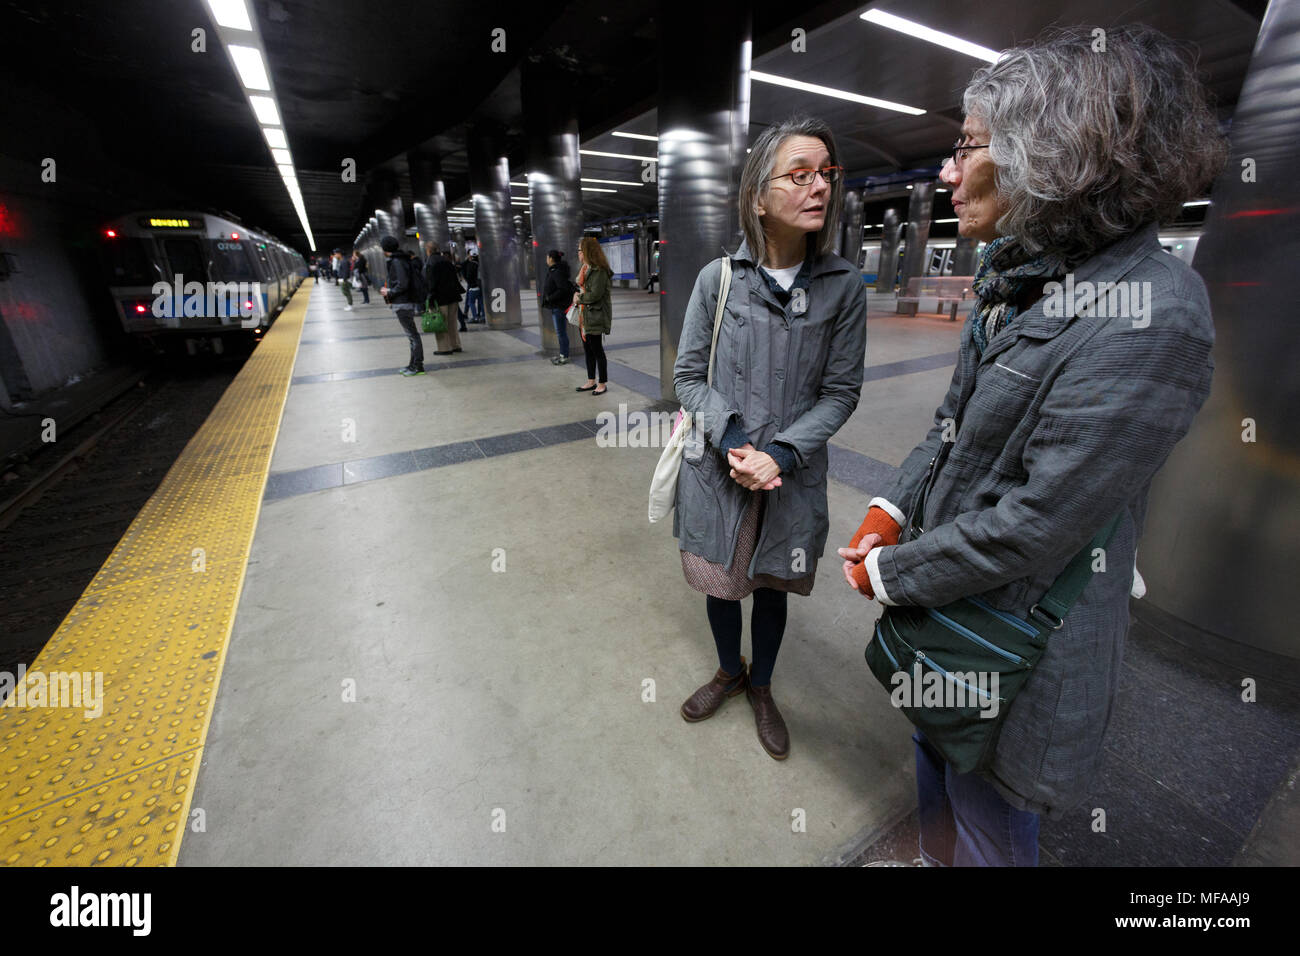 Women talking on a subway train platform. Maverick Station, Boston Massachusetts USA - Stock Image